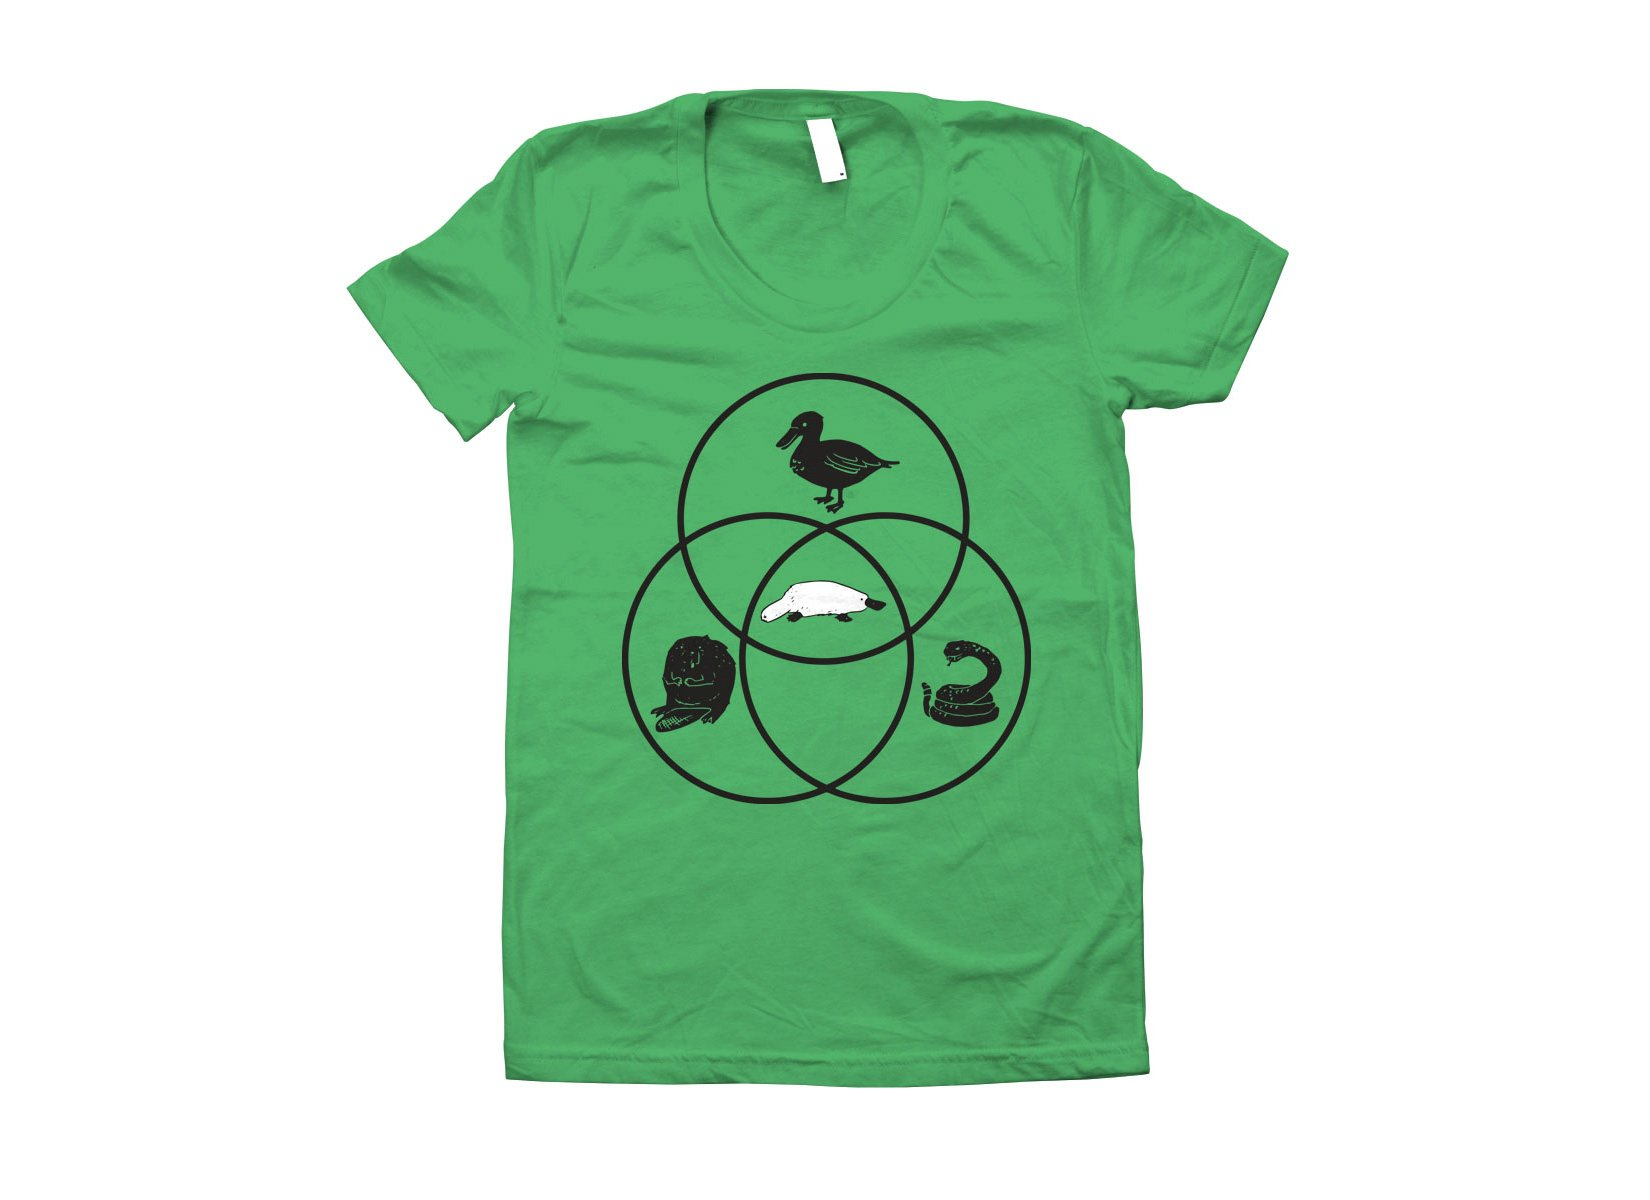 Platypus Venn Diagram on Juniors T-Shirt